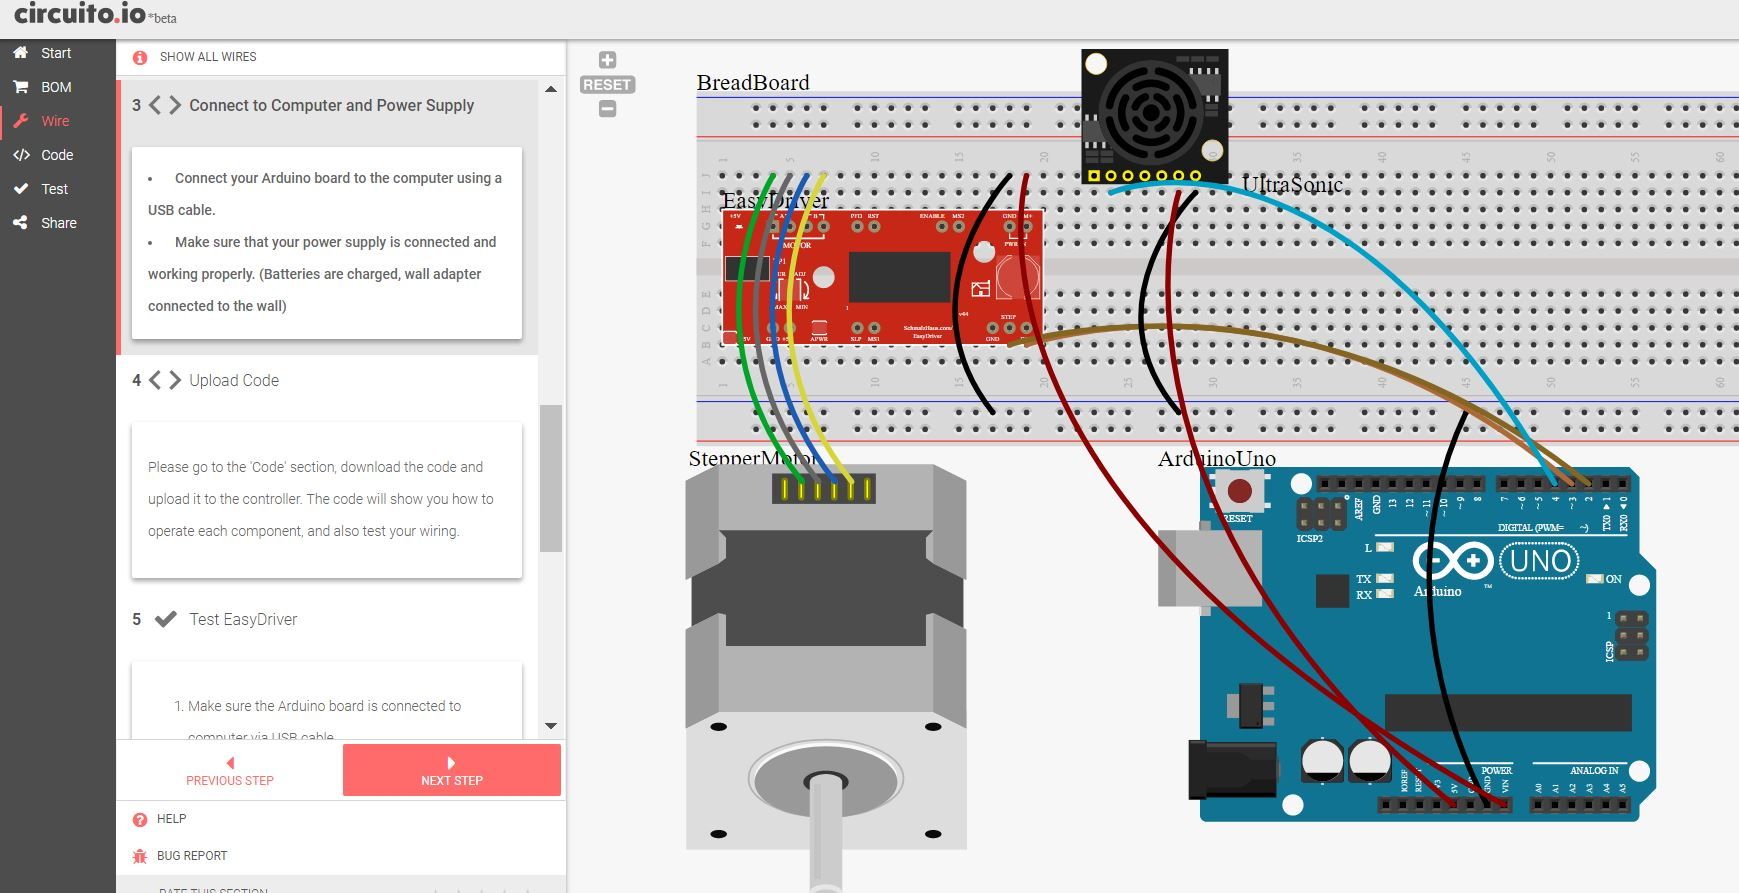 Circuito.io Helps Beginners Assemble Electronic Projects